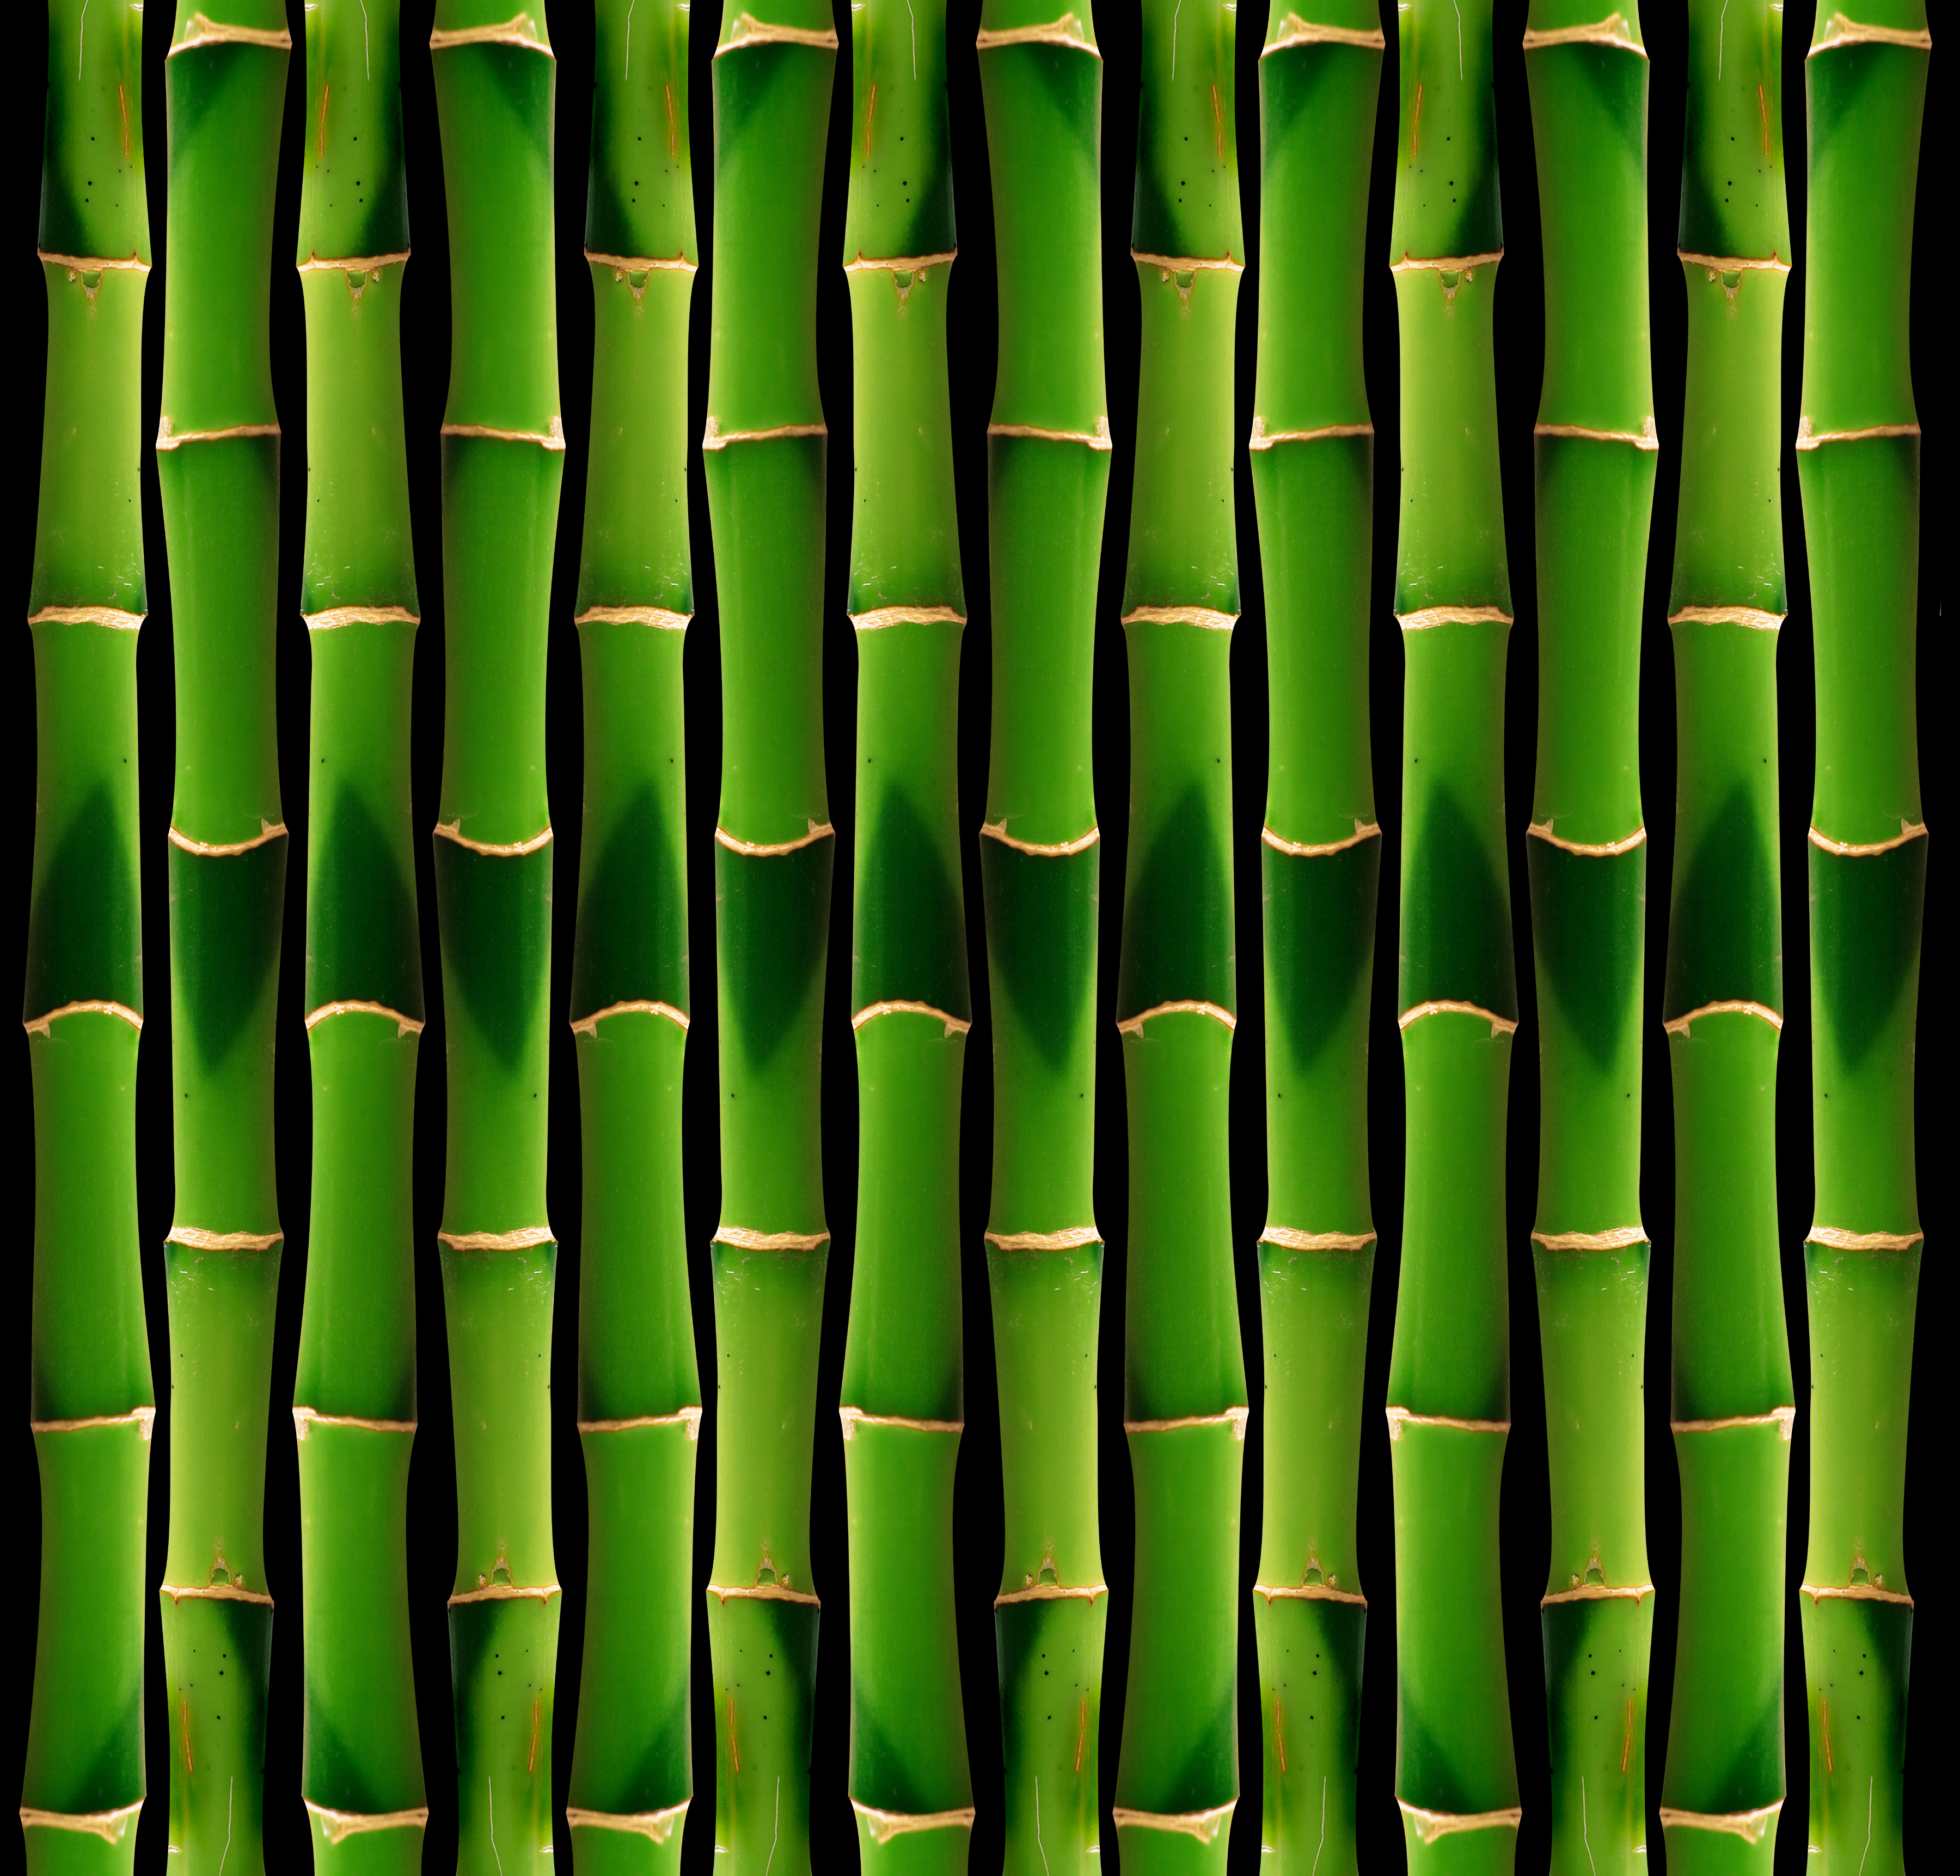 green bamboo, Texture bamboo, green bamboo texture, photo, background